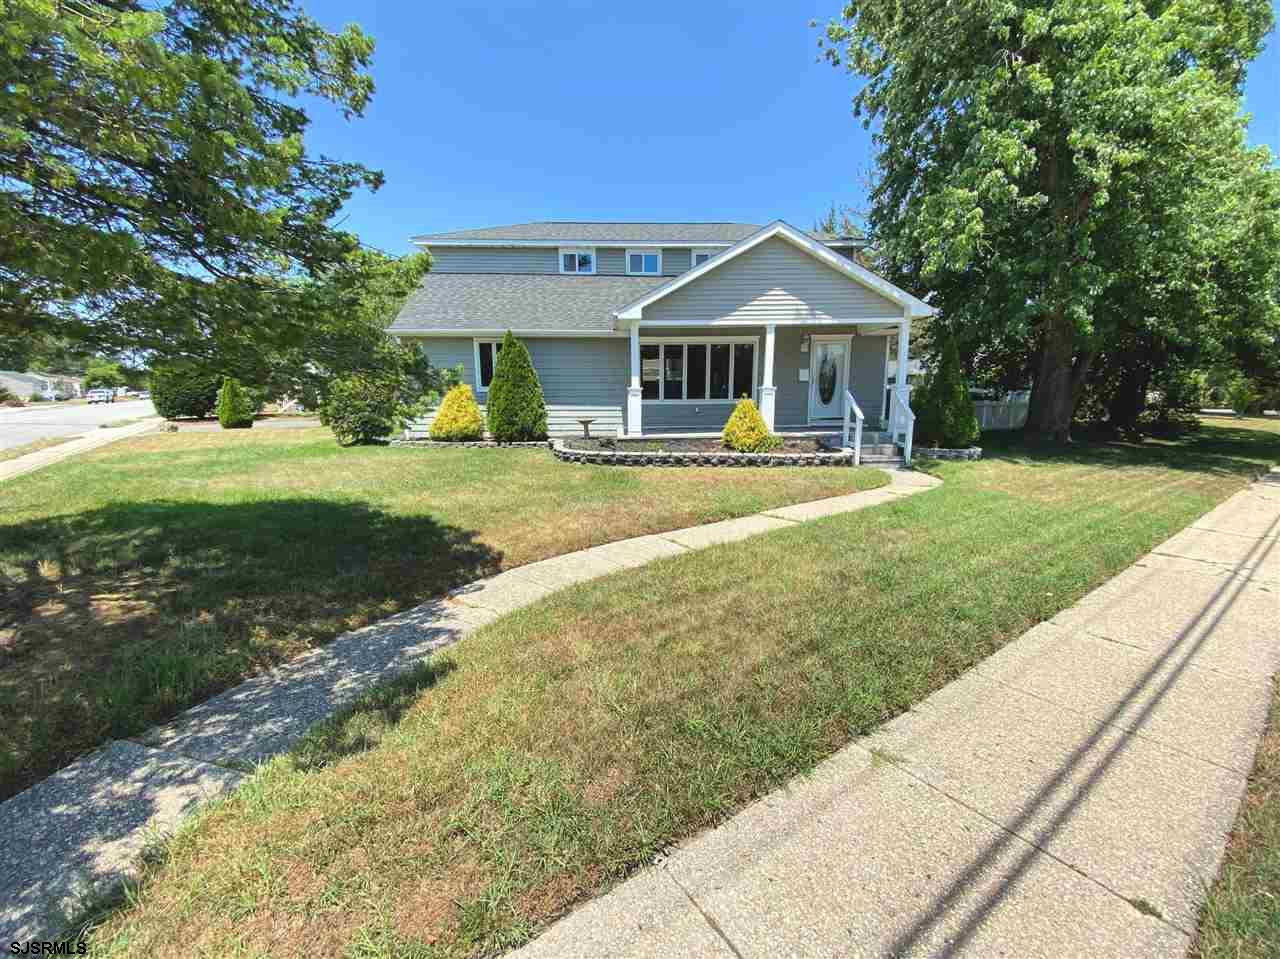 **BRING ALL OFFERS** RENOVATED LINWOOD BEAUTY ON SPACIOUS CORNER PROPERTY!! A lovely front porch wel